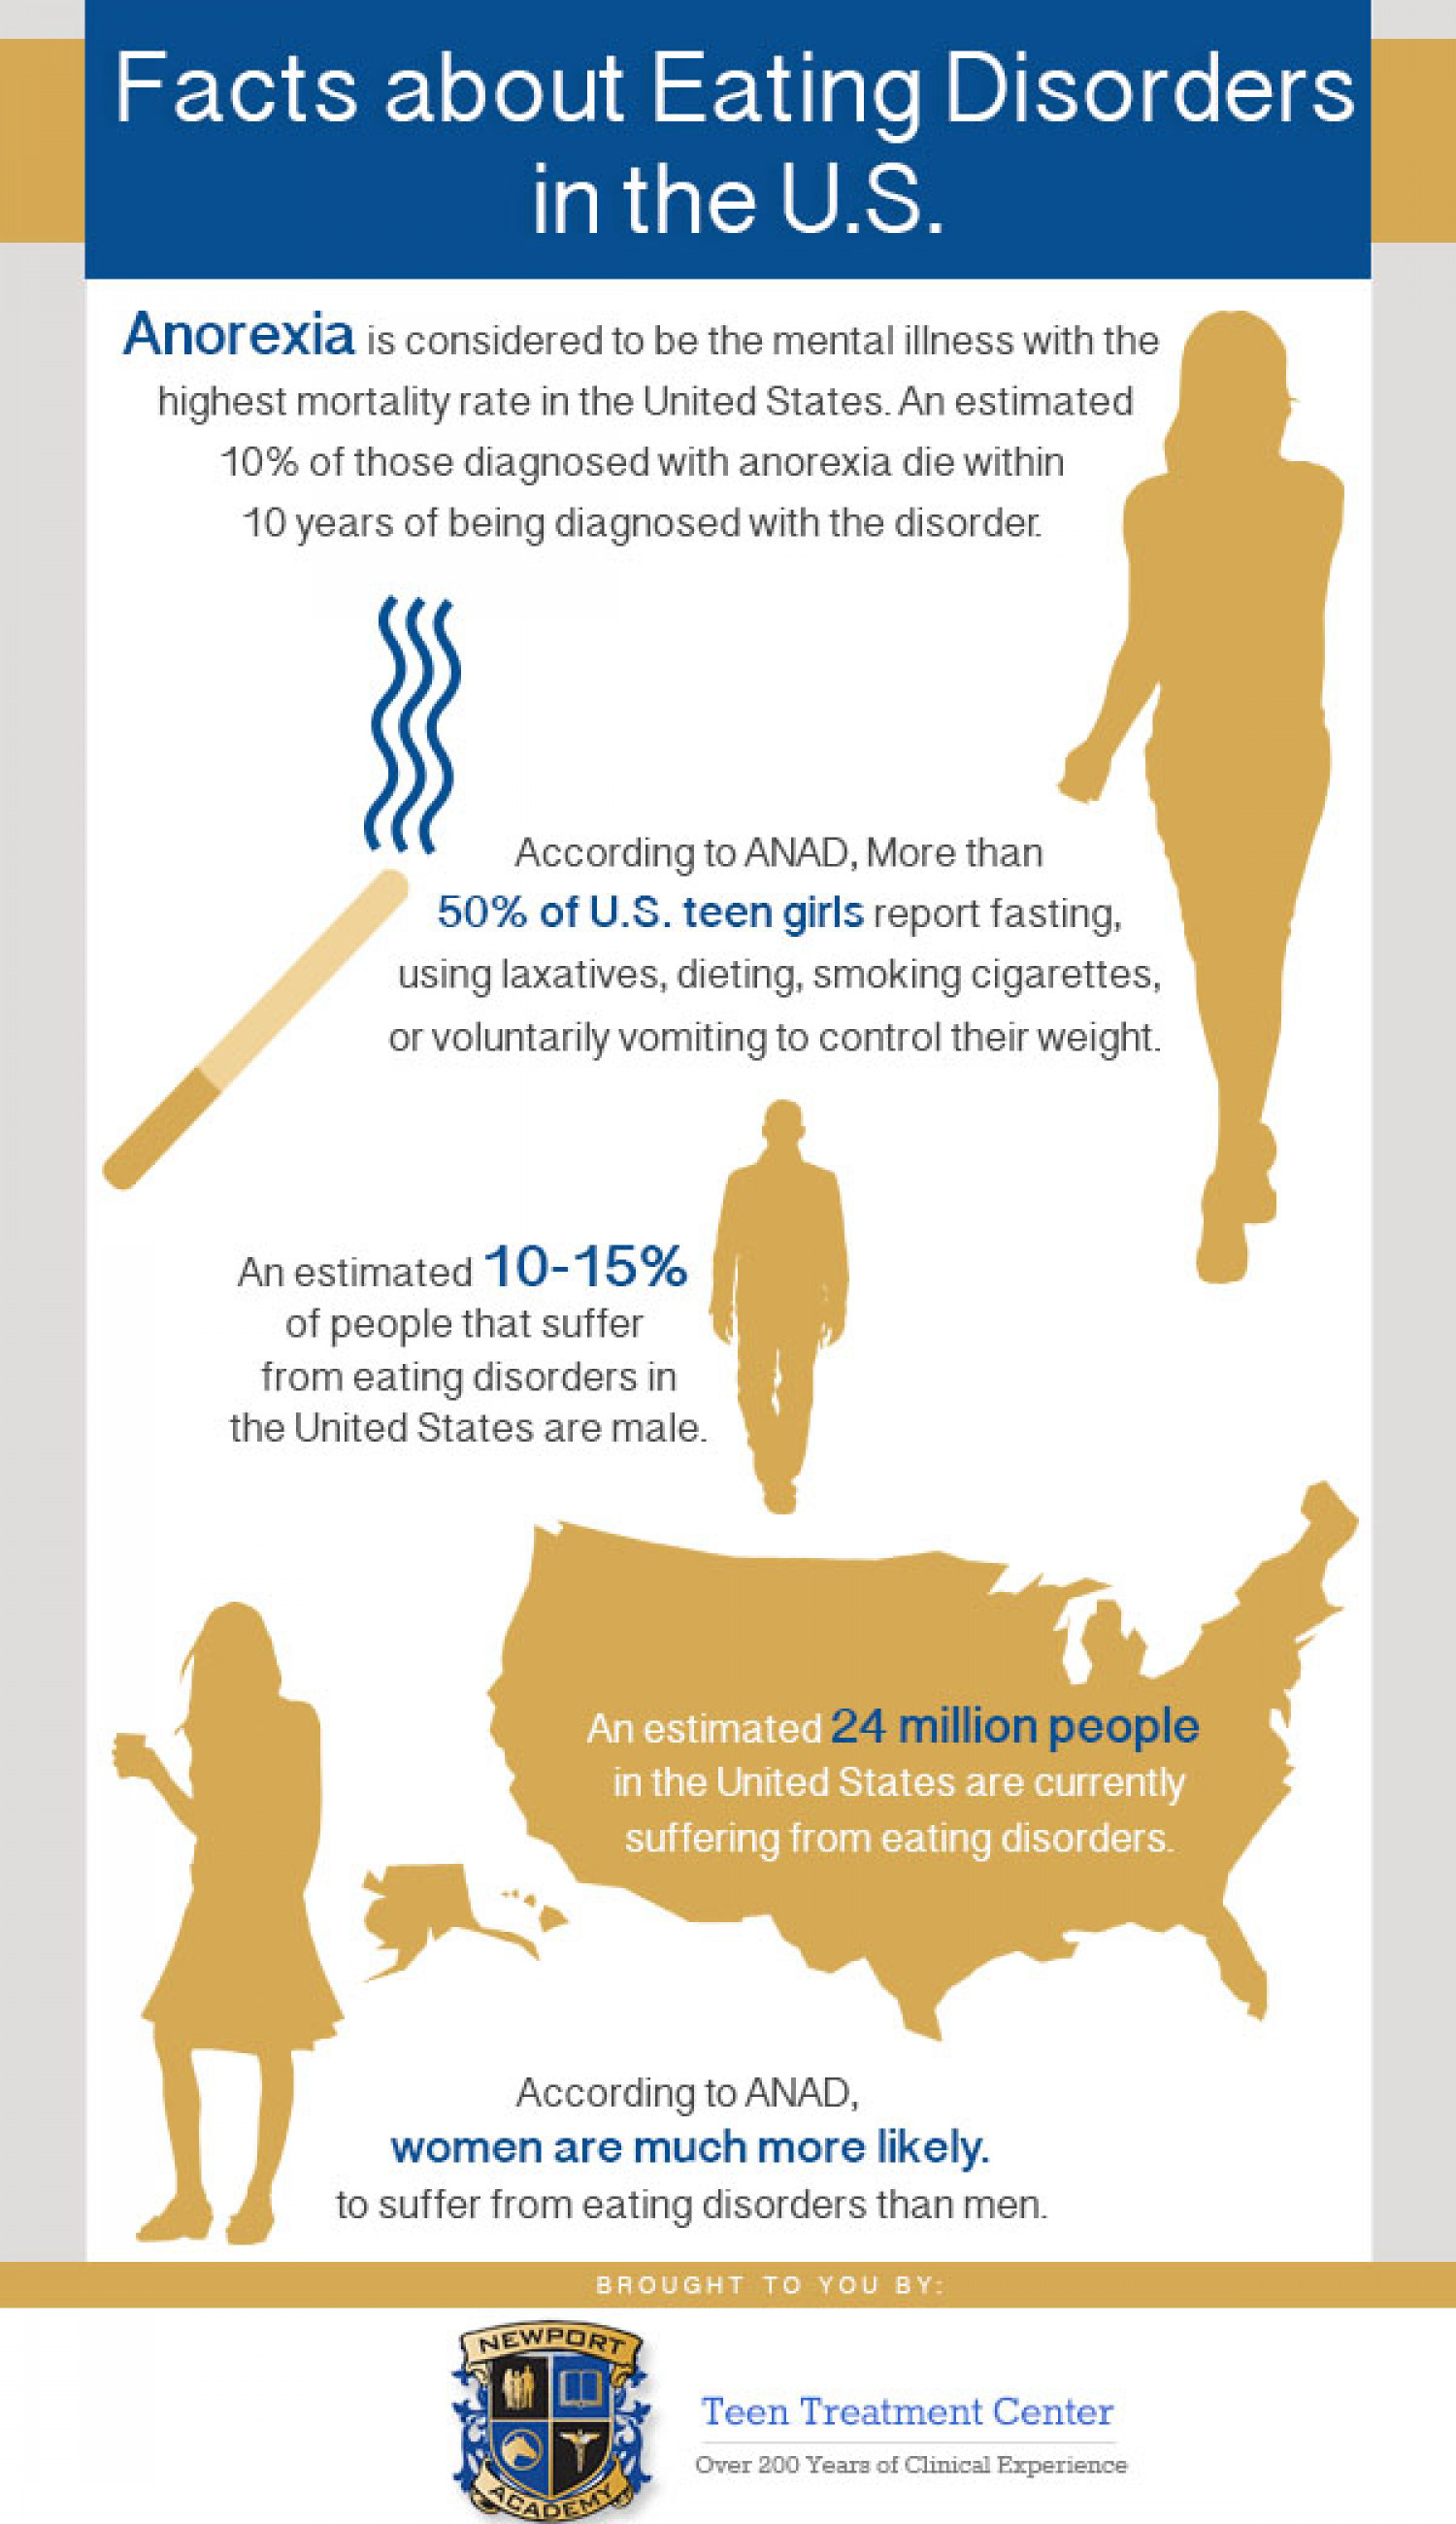 Facts About Eating Disorders in the U.S. Infographic